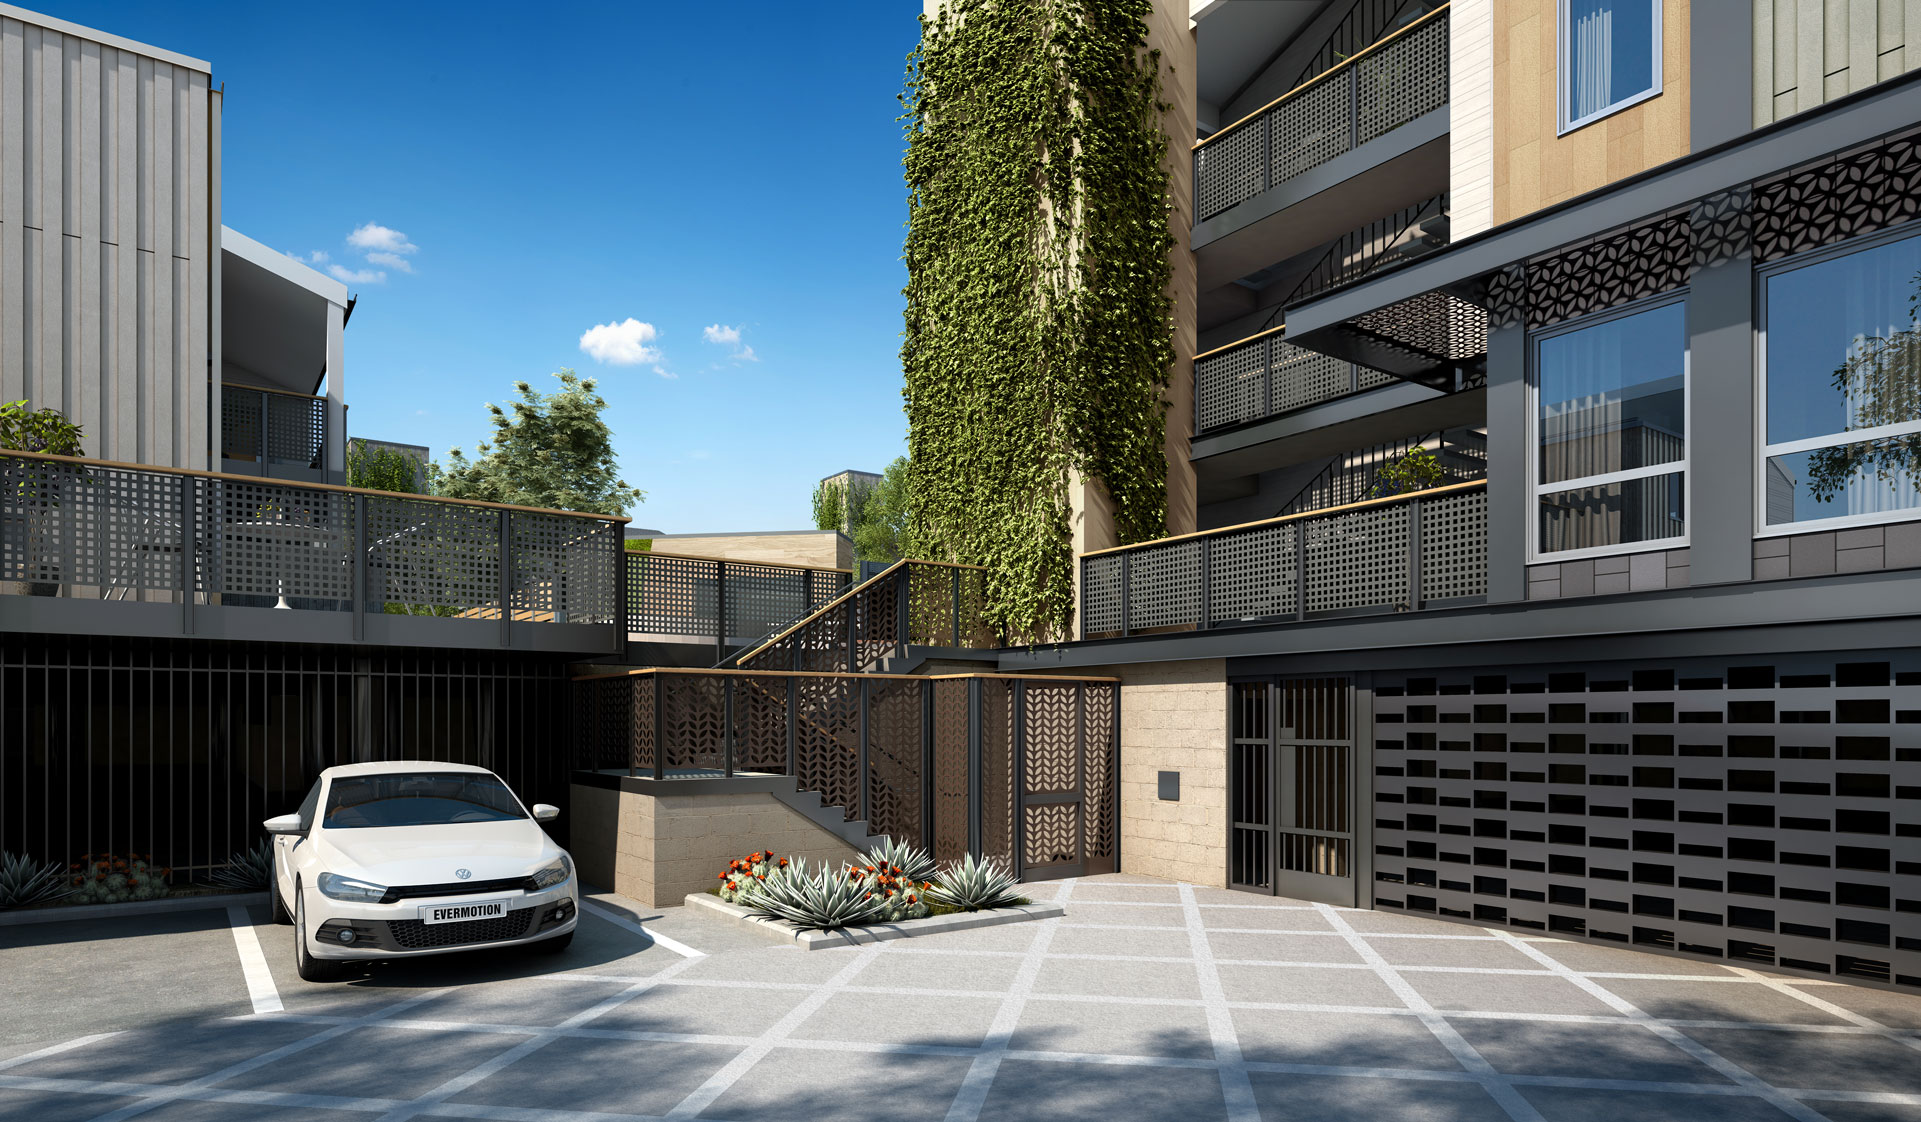 707 Leahy Apartments in Redwood City, CA - parking